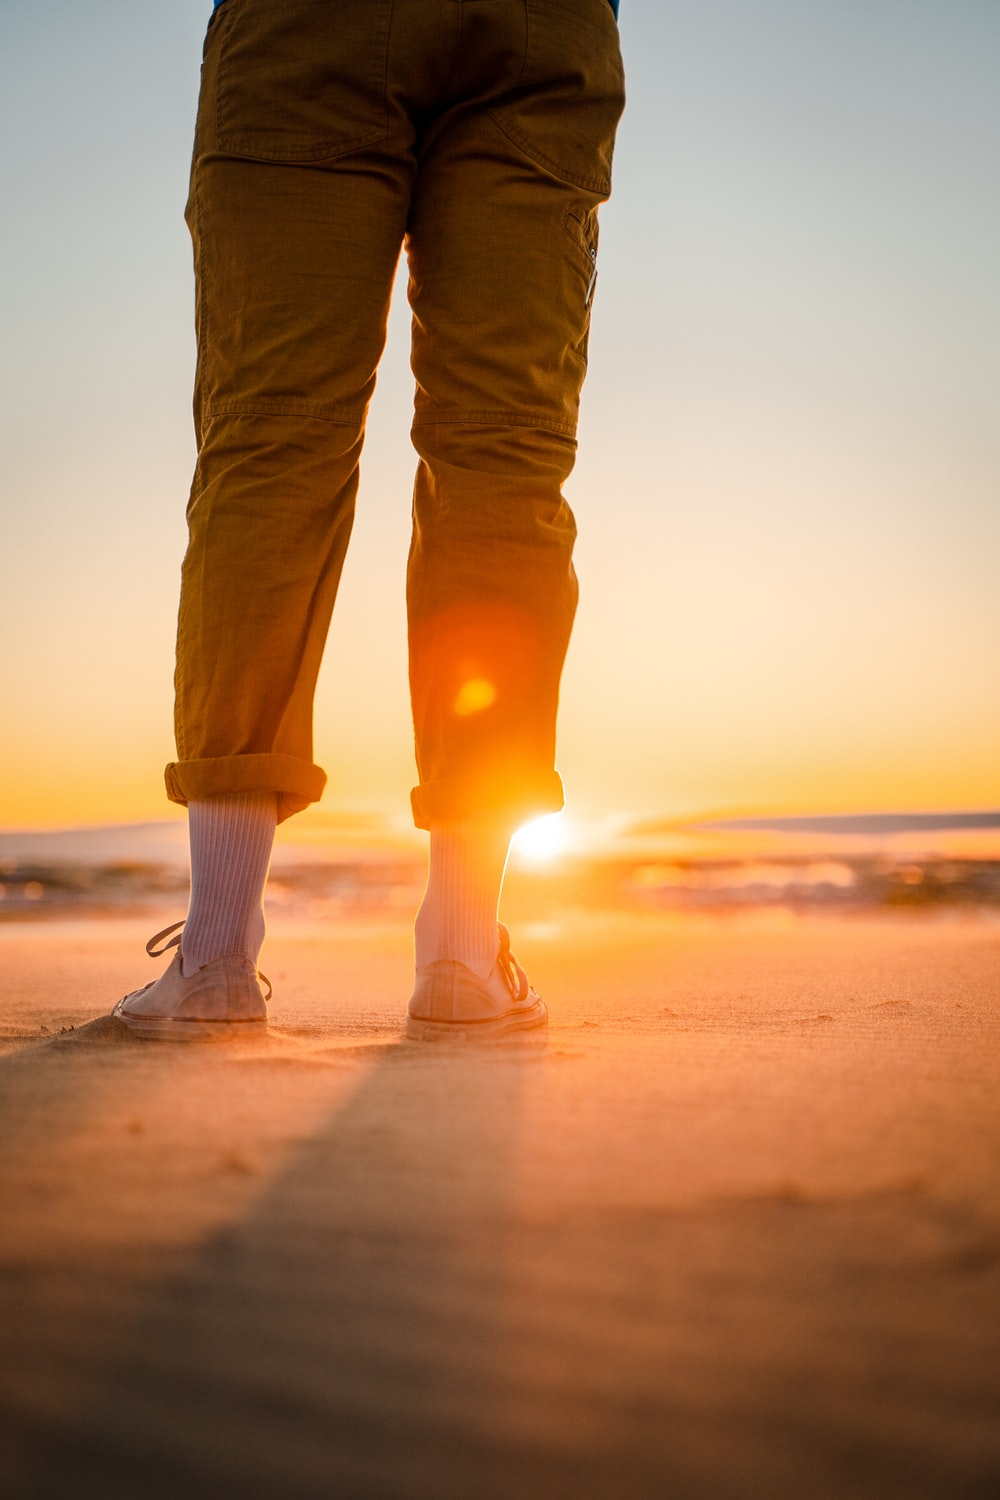 person in brown pants and white socks standing on beach during sunset